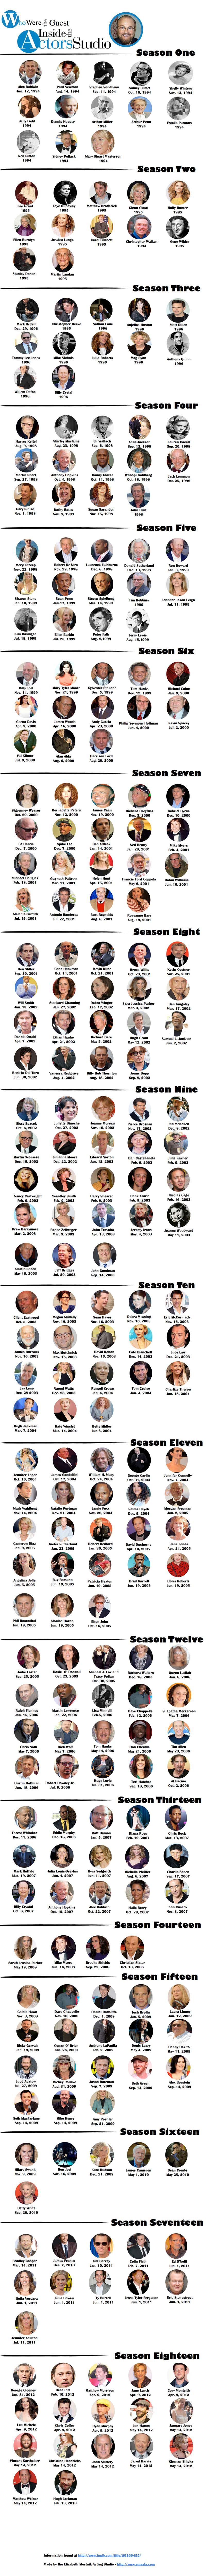 guests on inside the actors studio by year